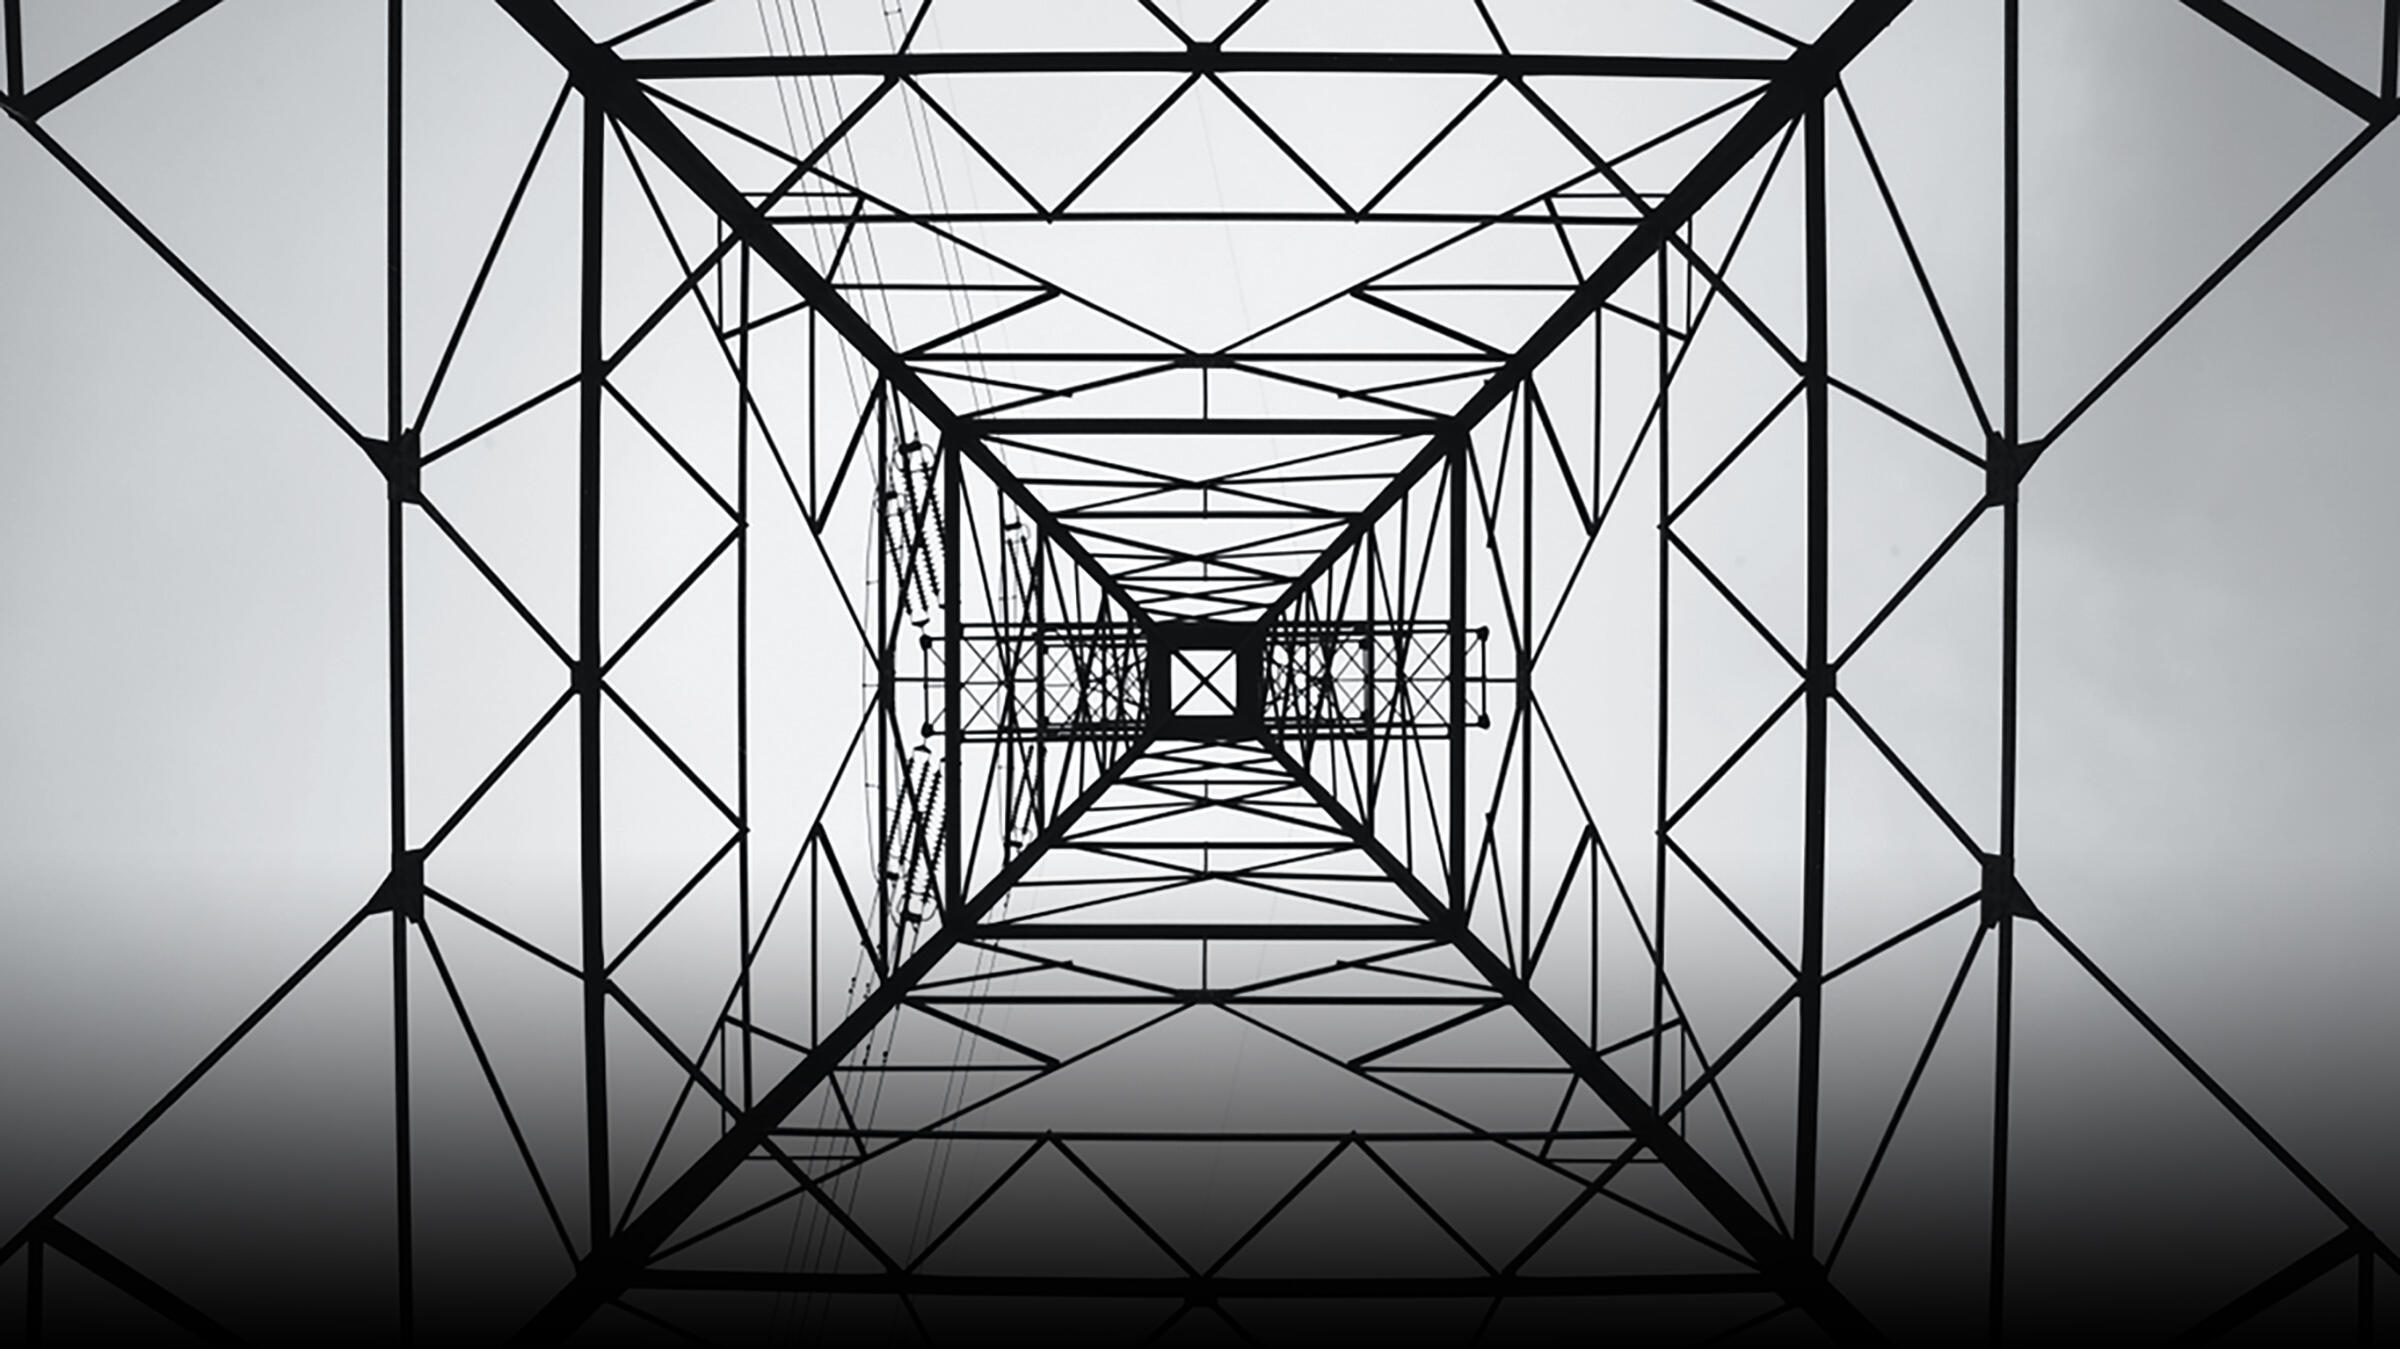 Transmission_Lines_Getty_Images